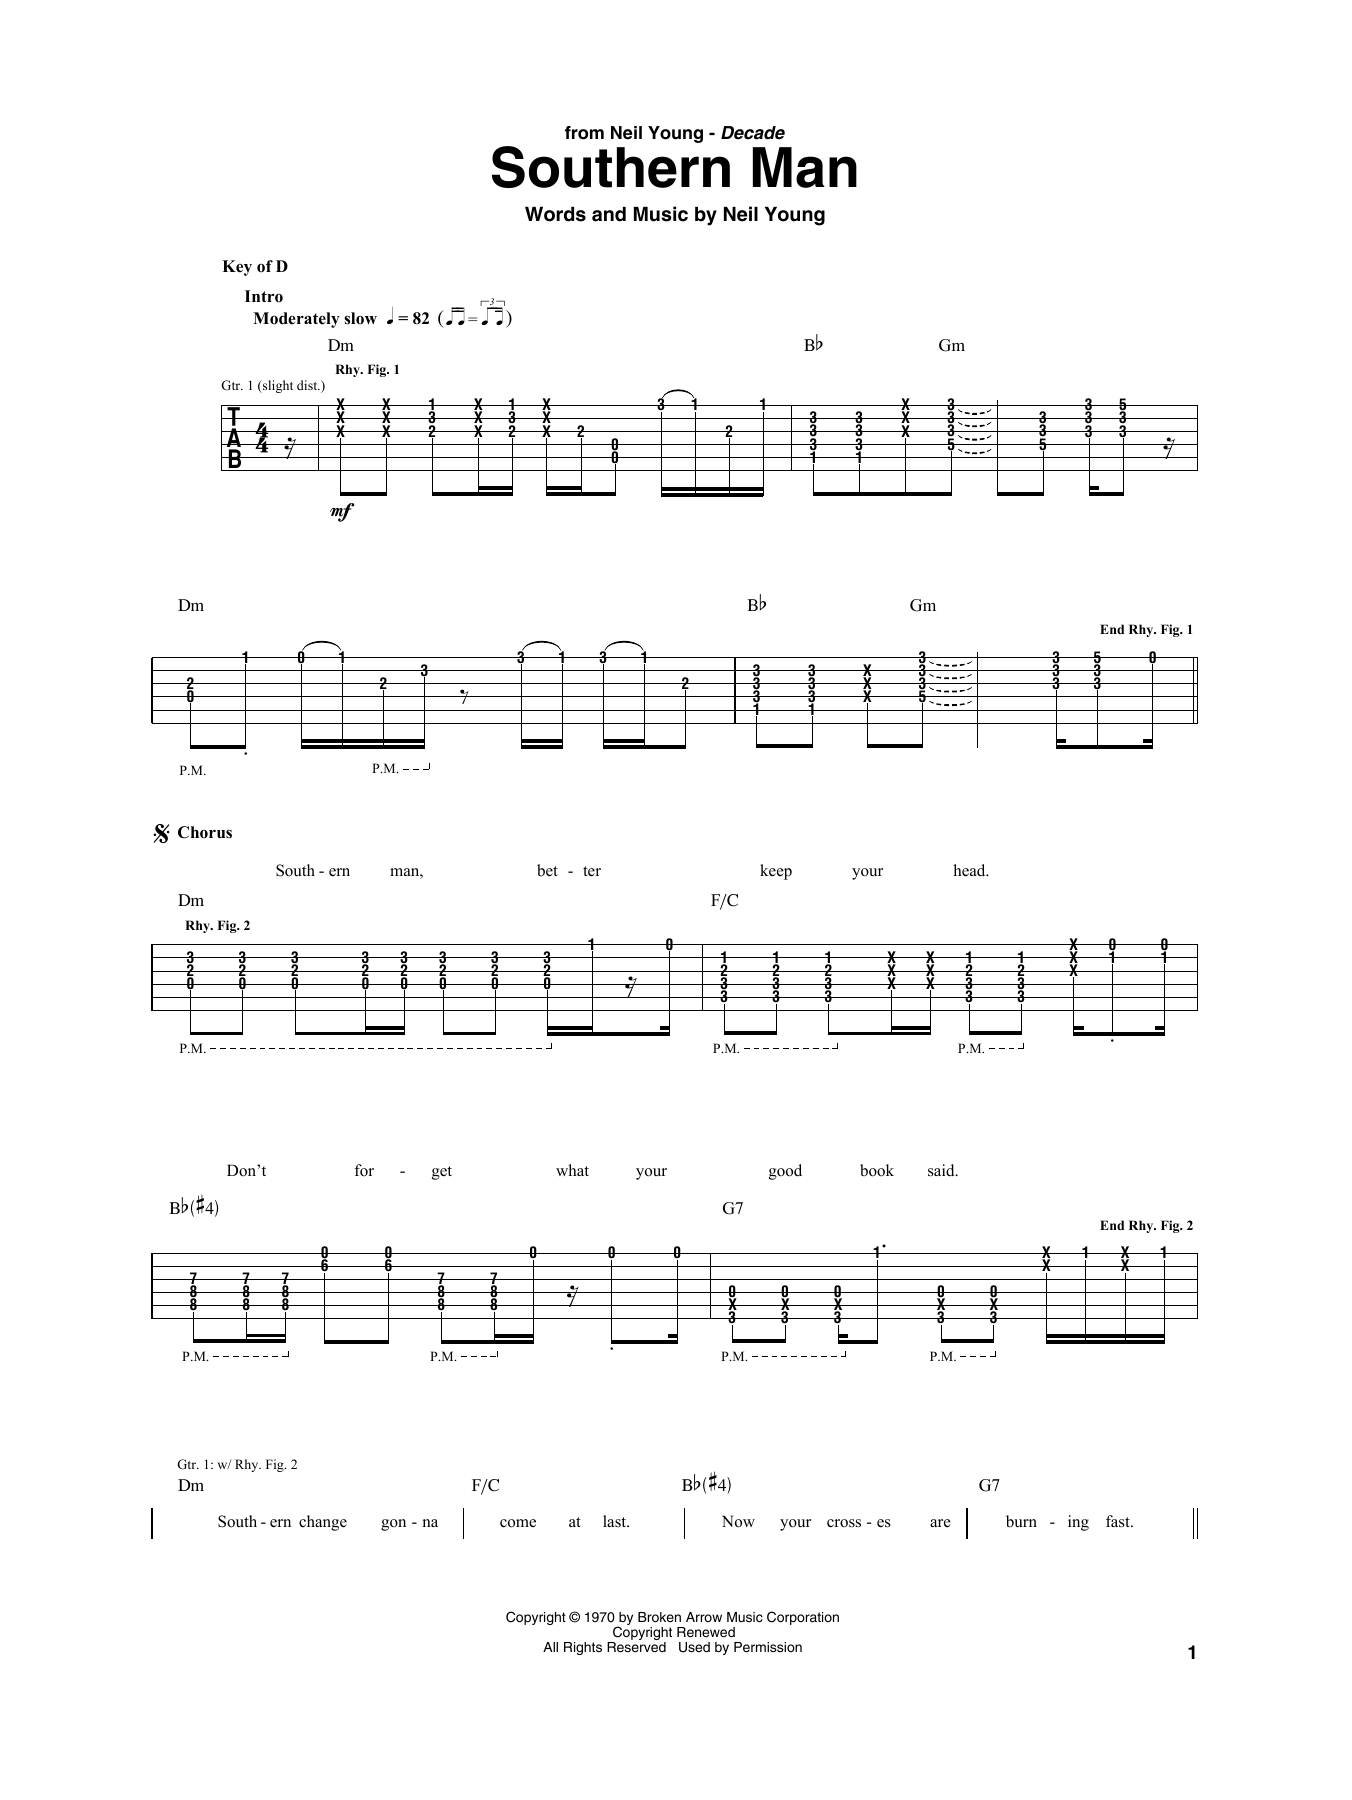 Neil Young Southern Man sheet music notes and chords